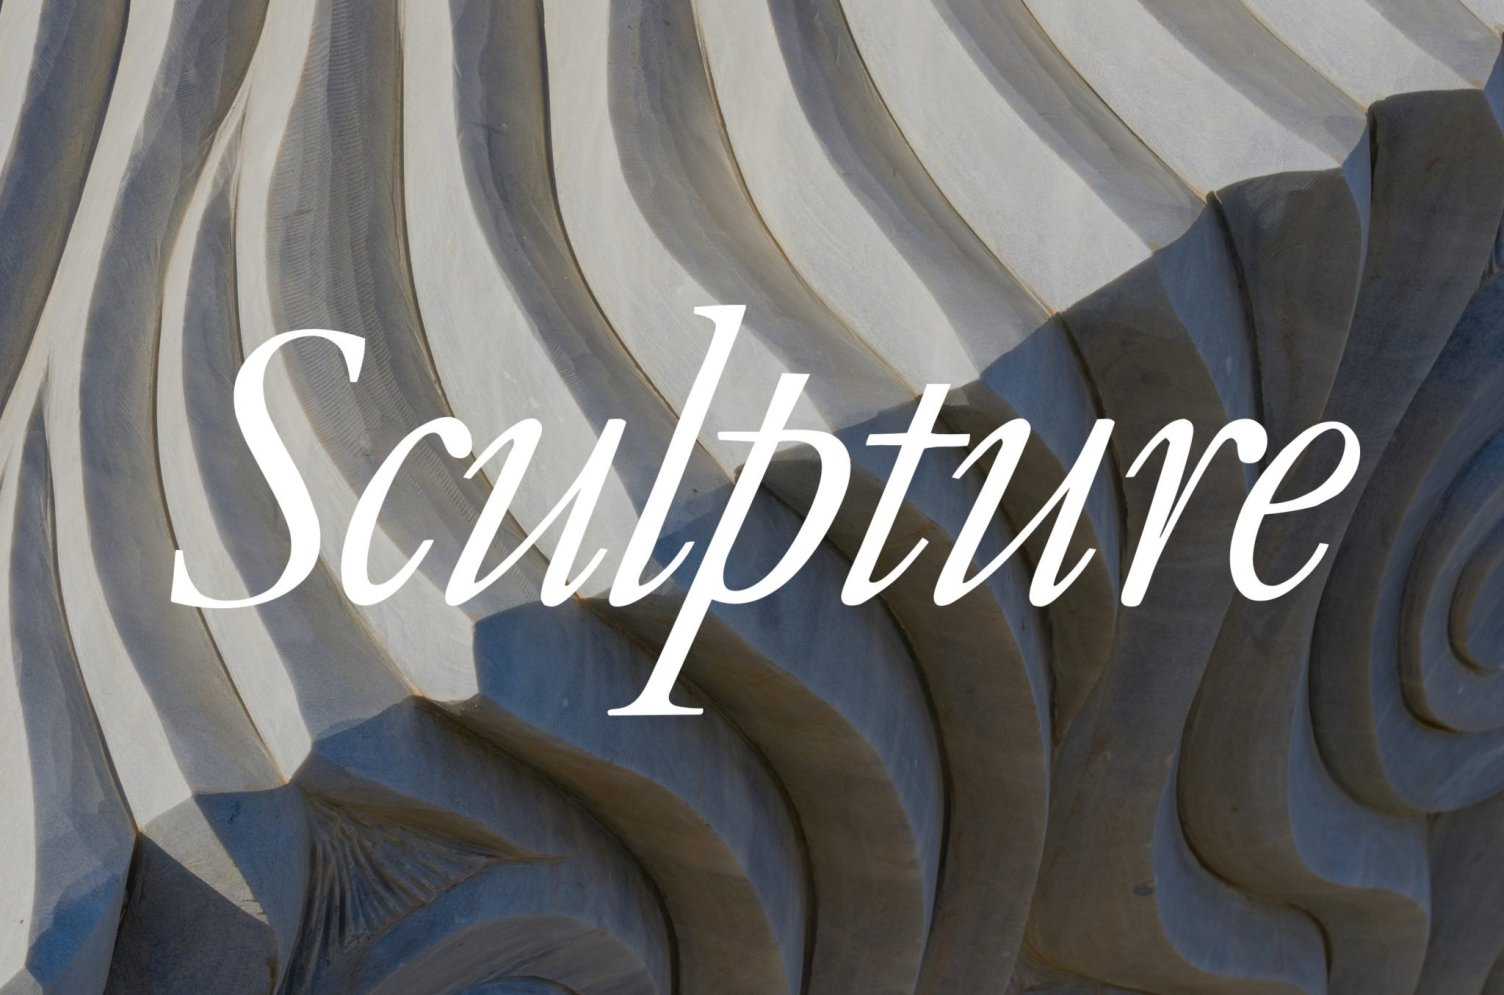 Sculpture Magazine Logo